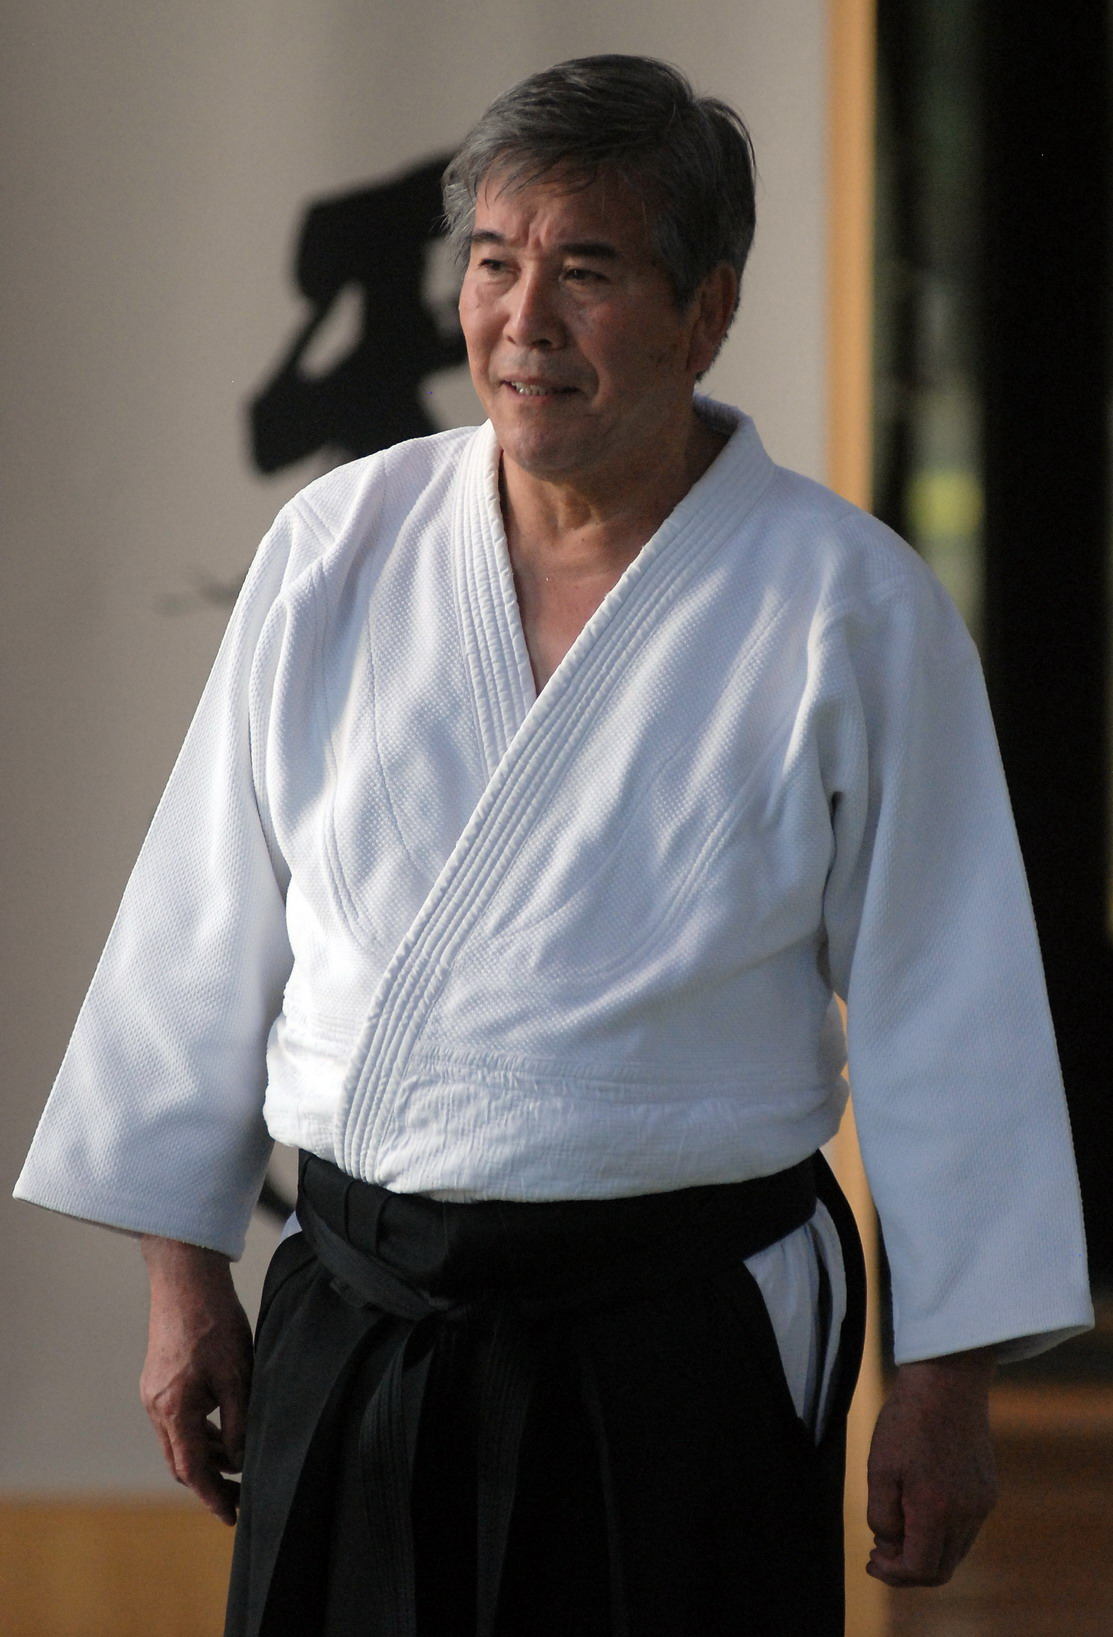 Kenji Shimizu on practice seminary in [[Novi Sad